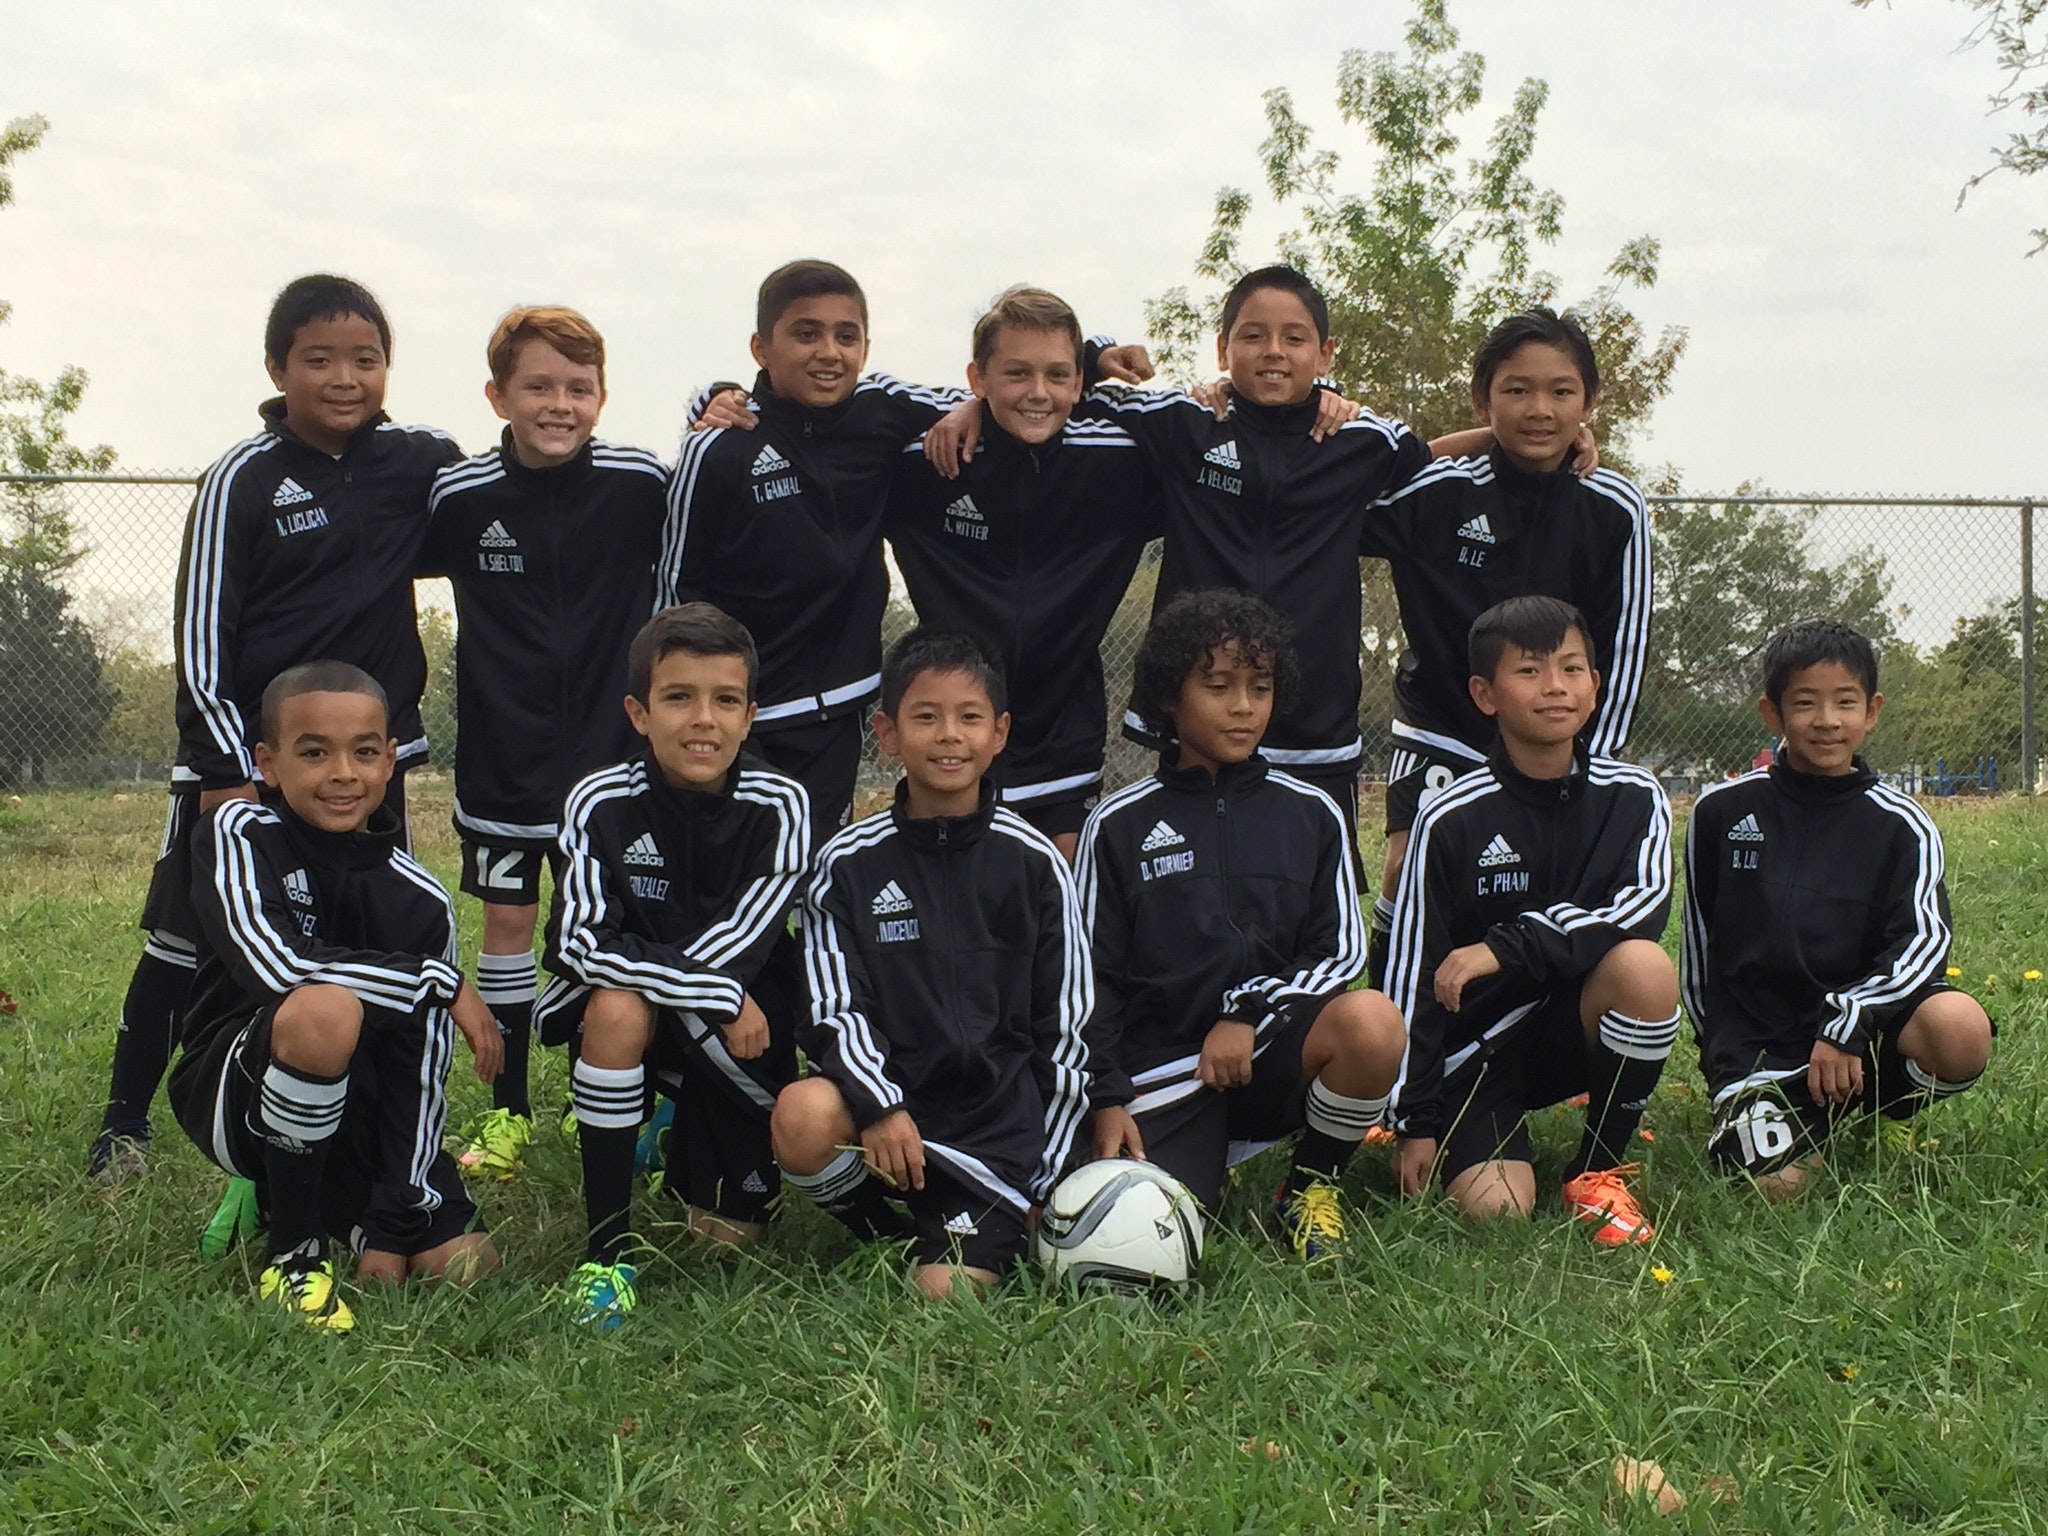 North Valley United 04 Boys